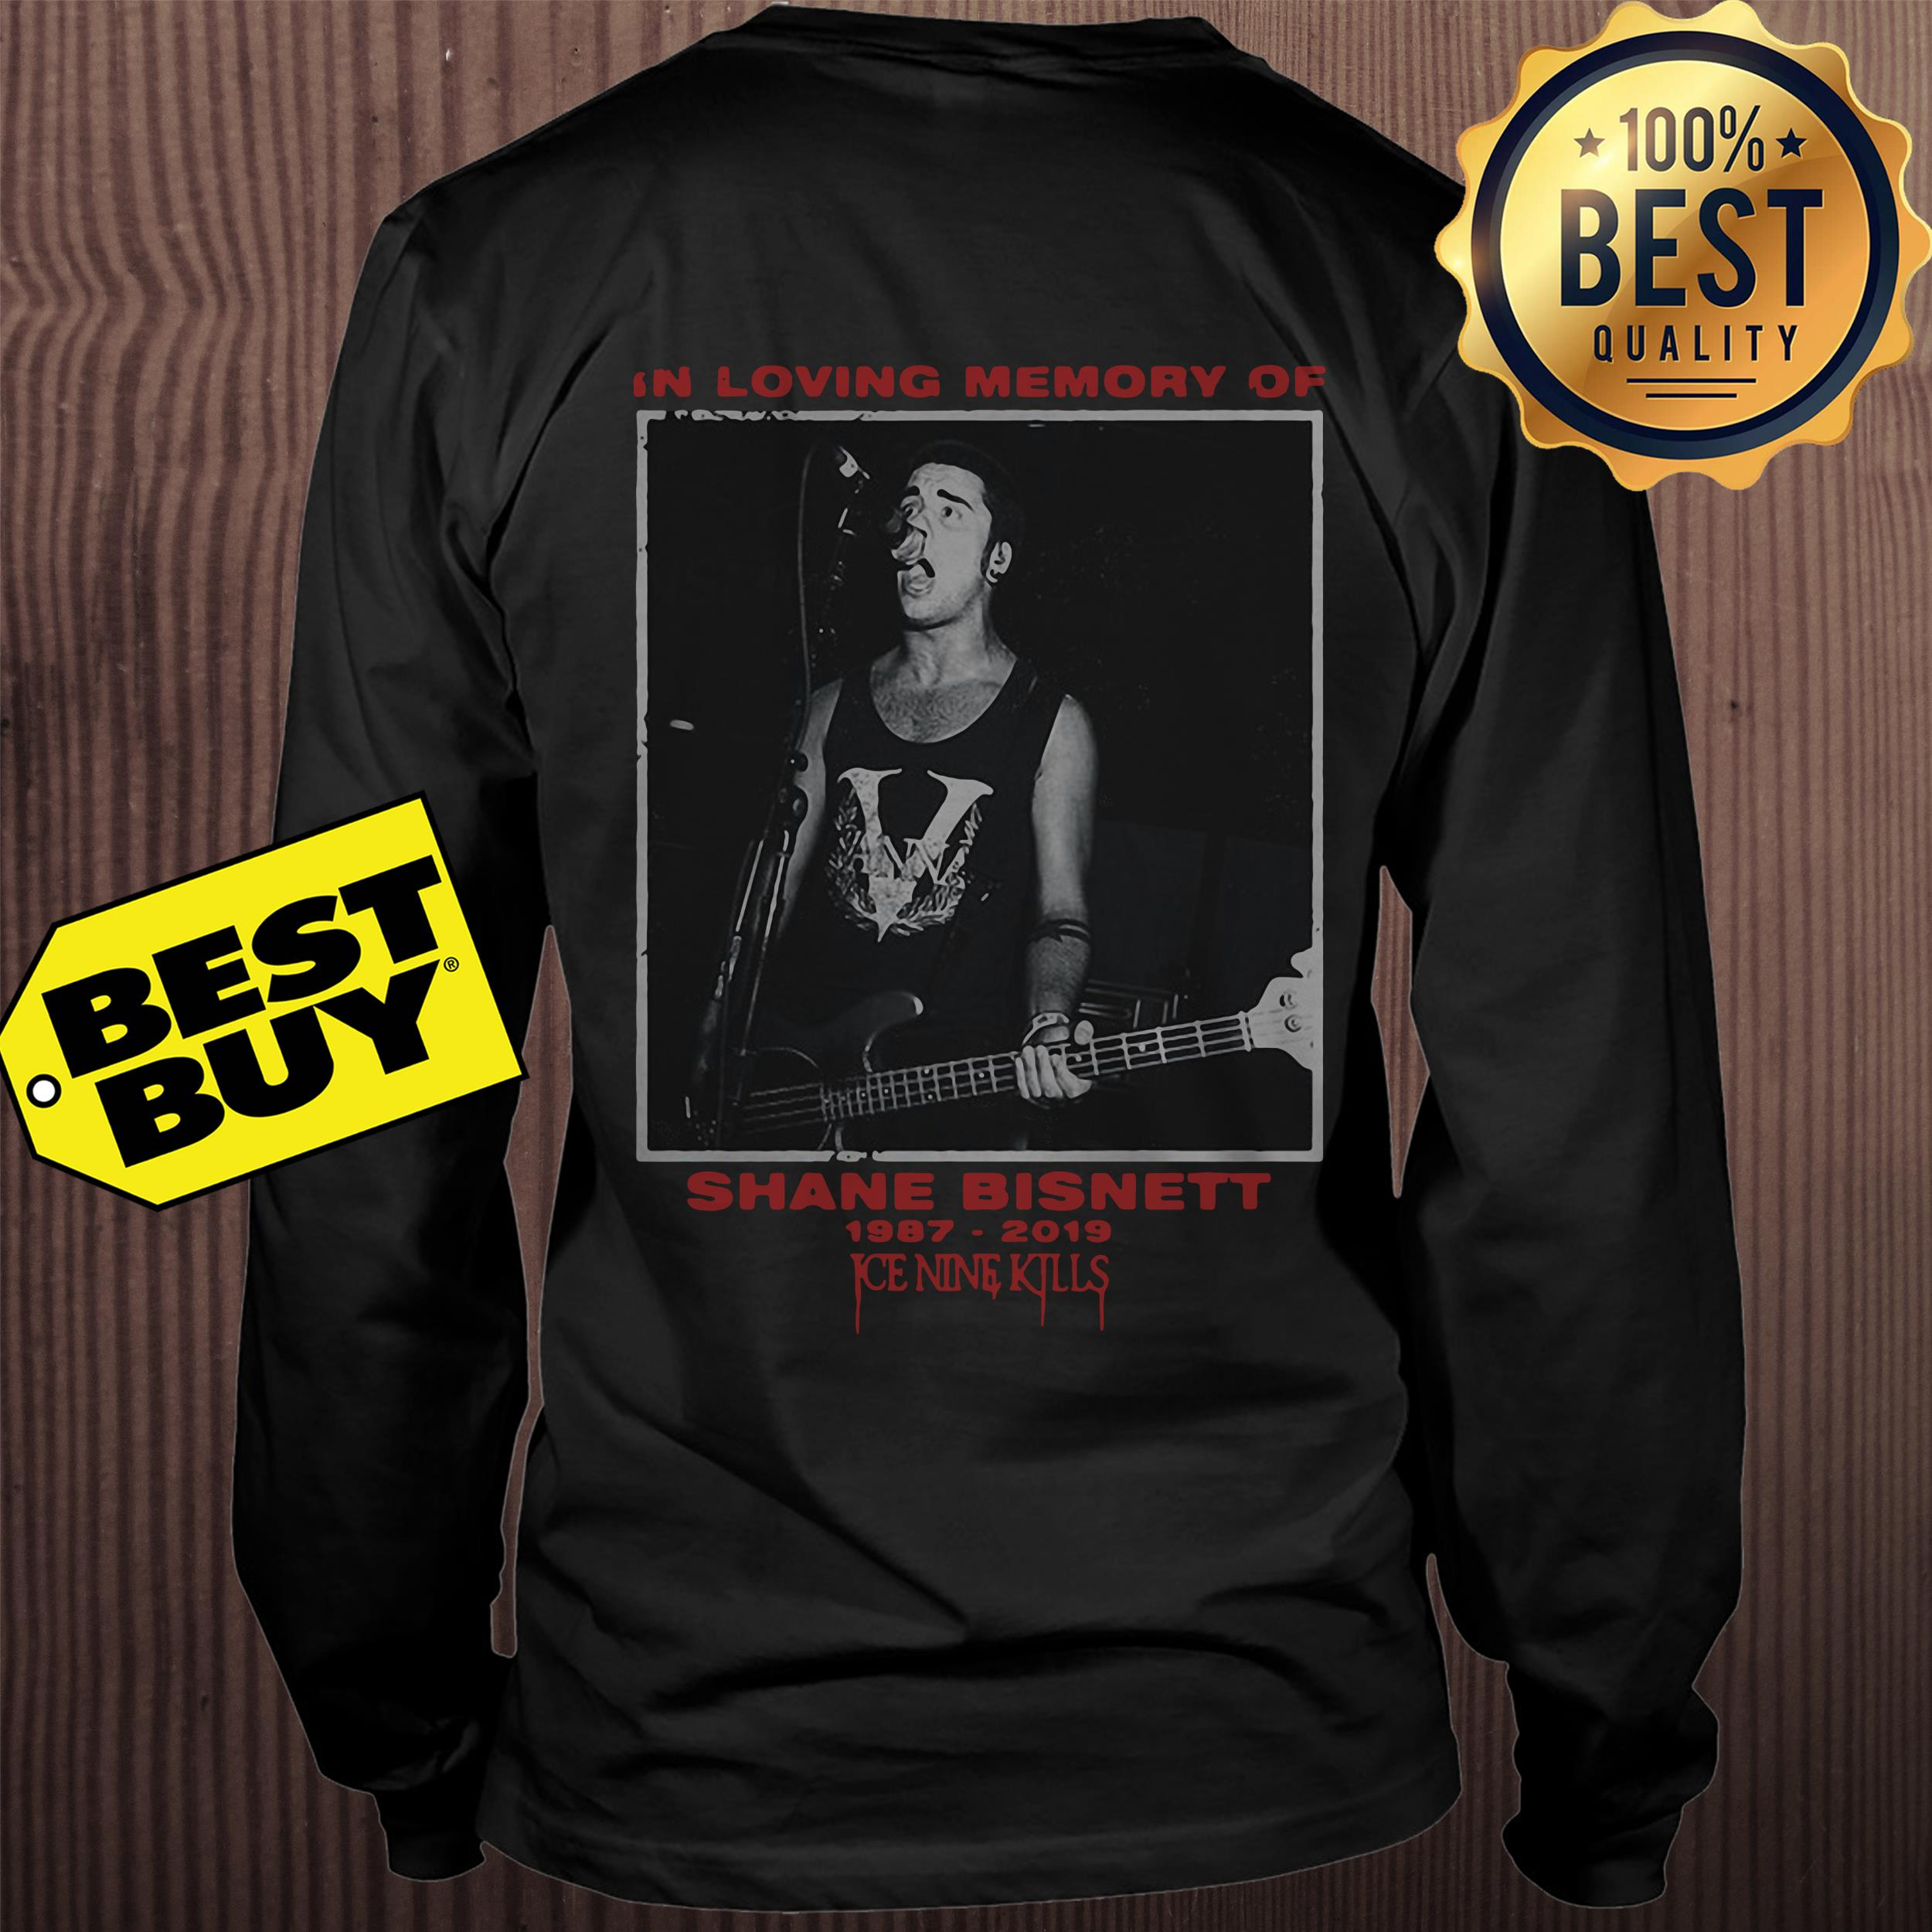 In loving memory of Shane Bisnett 1987-2019 Ice Nine kills sweatshirt